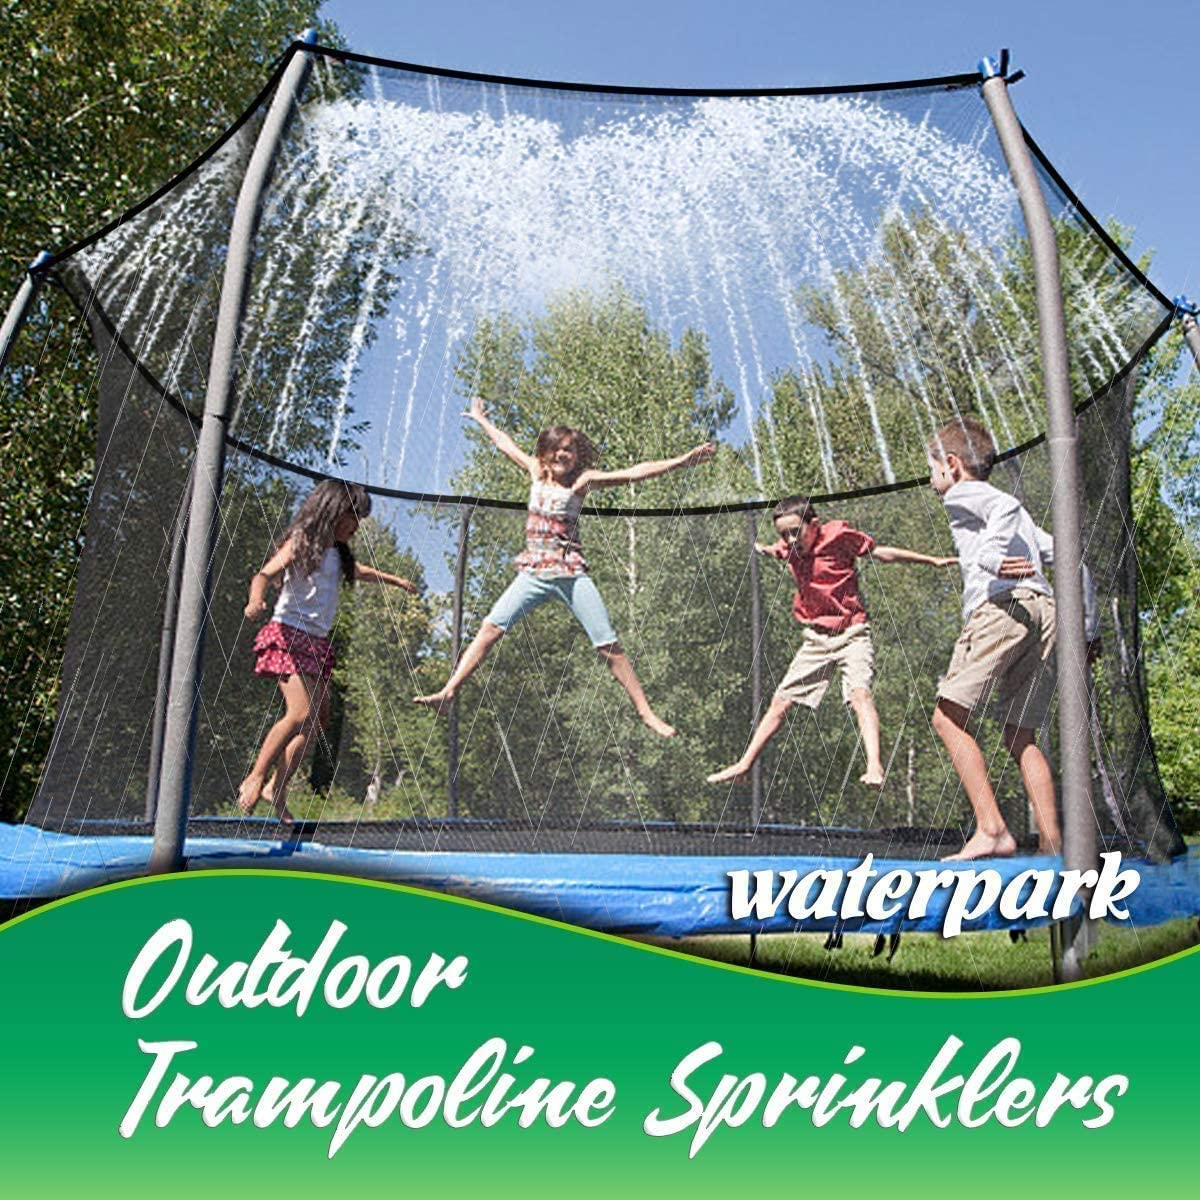 Trampoline Sprinklers for Kids Outdoor Fun Trampoline Water Park Summer Toys Trampoline Accessories 39.3ft Outside Water Toy Attached on Trampoline Safety Net Enclosure